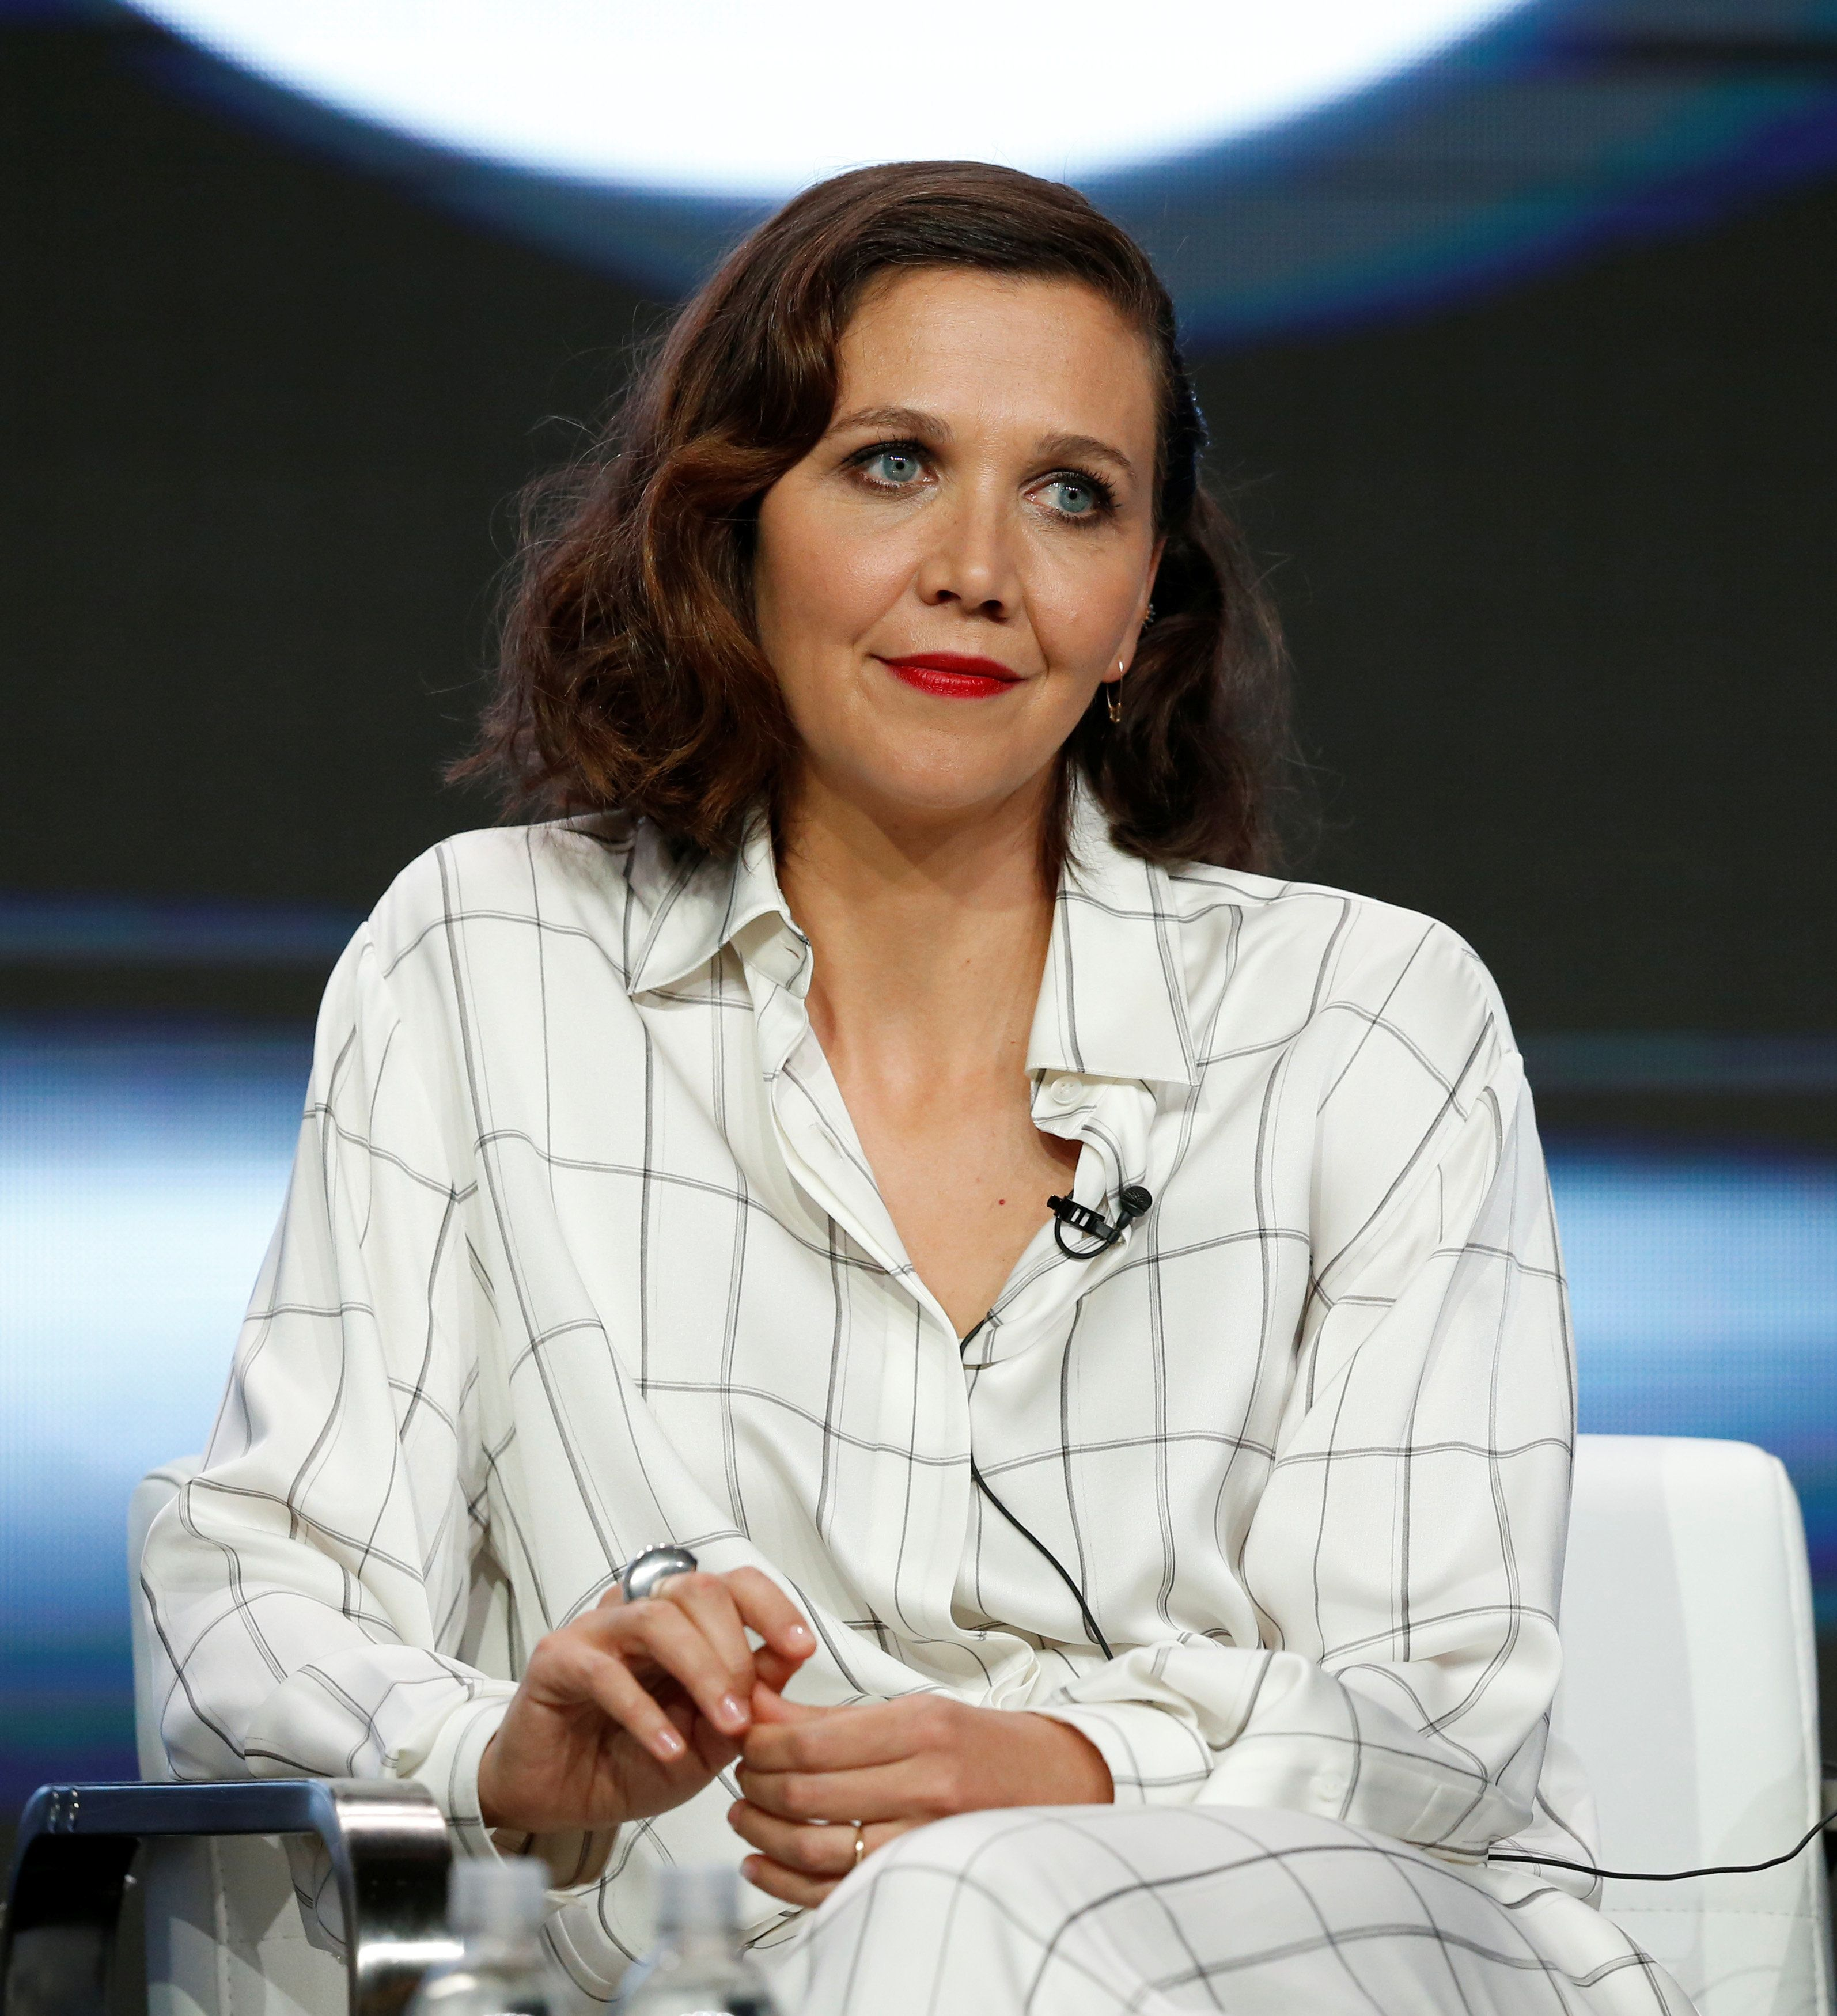 """Producer and cast member Maggie Gyllenhaal attends a panel for the television series """"The Deuce"""" during the TCA HBO Summer Press Tour in Beverly Hills, California, U.S., July 26, 2017. REUTERS/Mario Anzuoni"""